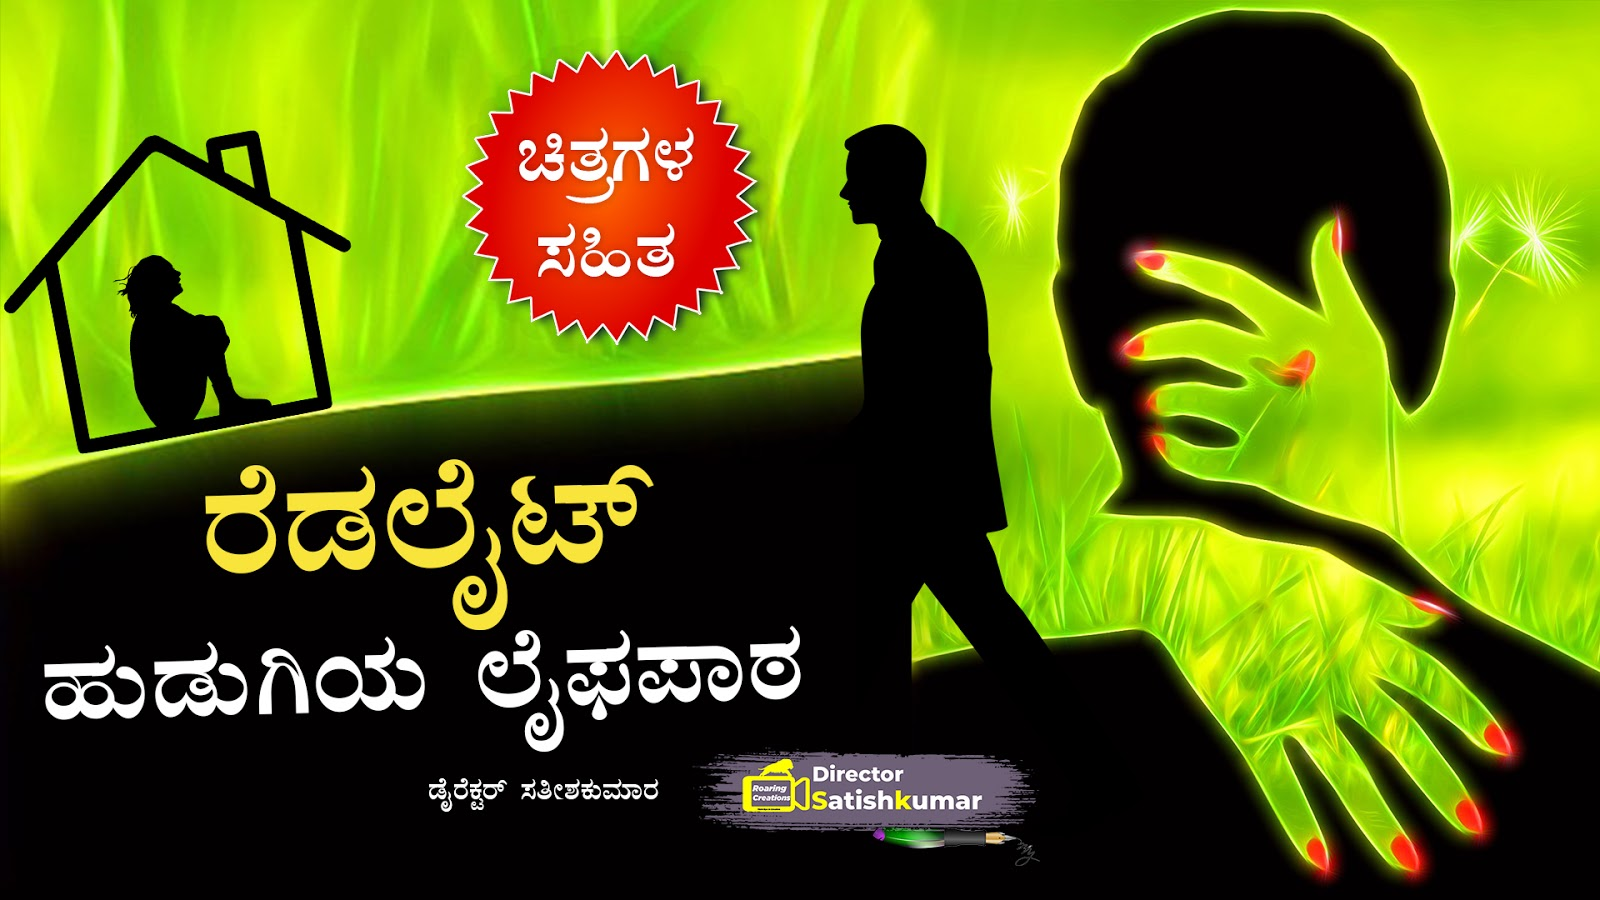 ರೆಡಲೈಟ್ ಹುಡುಗಿಯ ಲೈಫಪಾಠ - Fictional Romance and Social Message Story in Kannada - Kannada Romantic Story